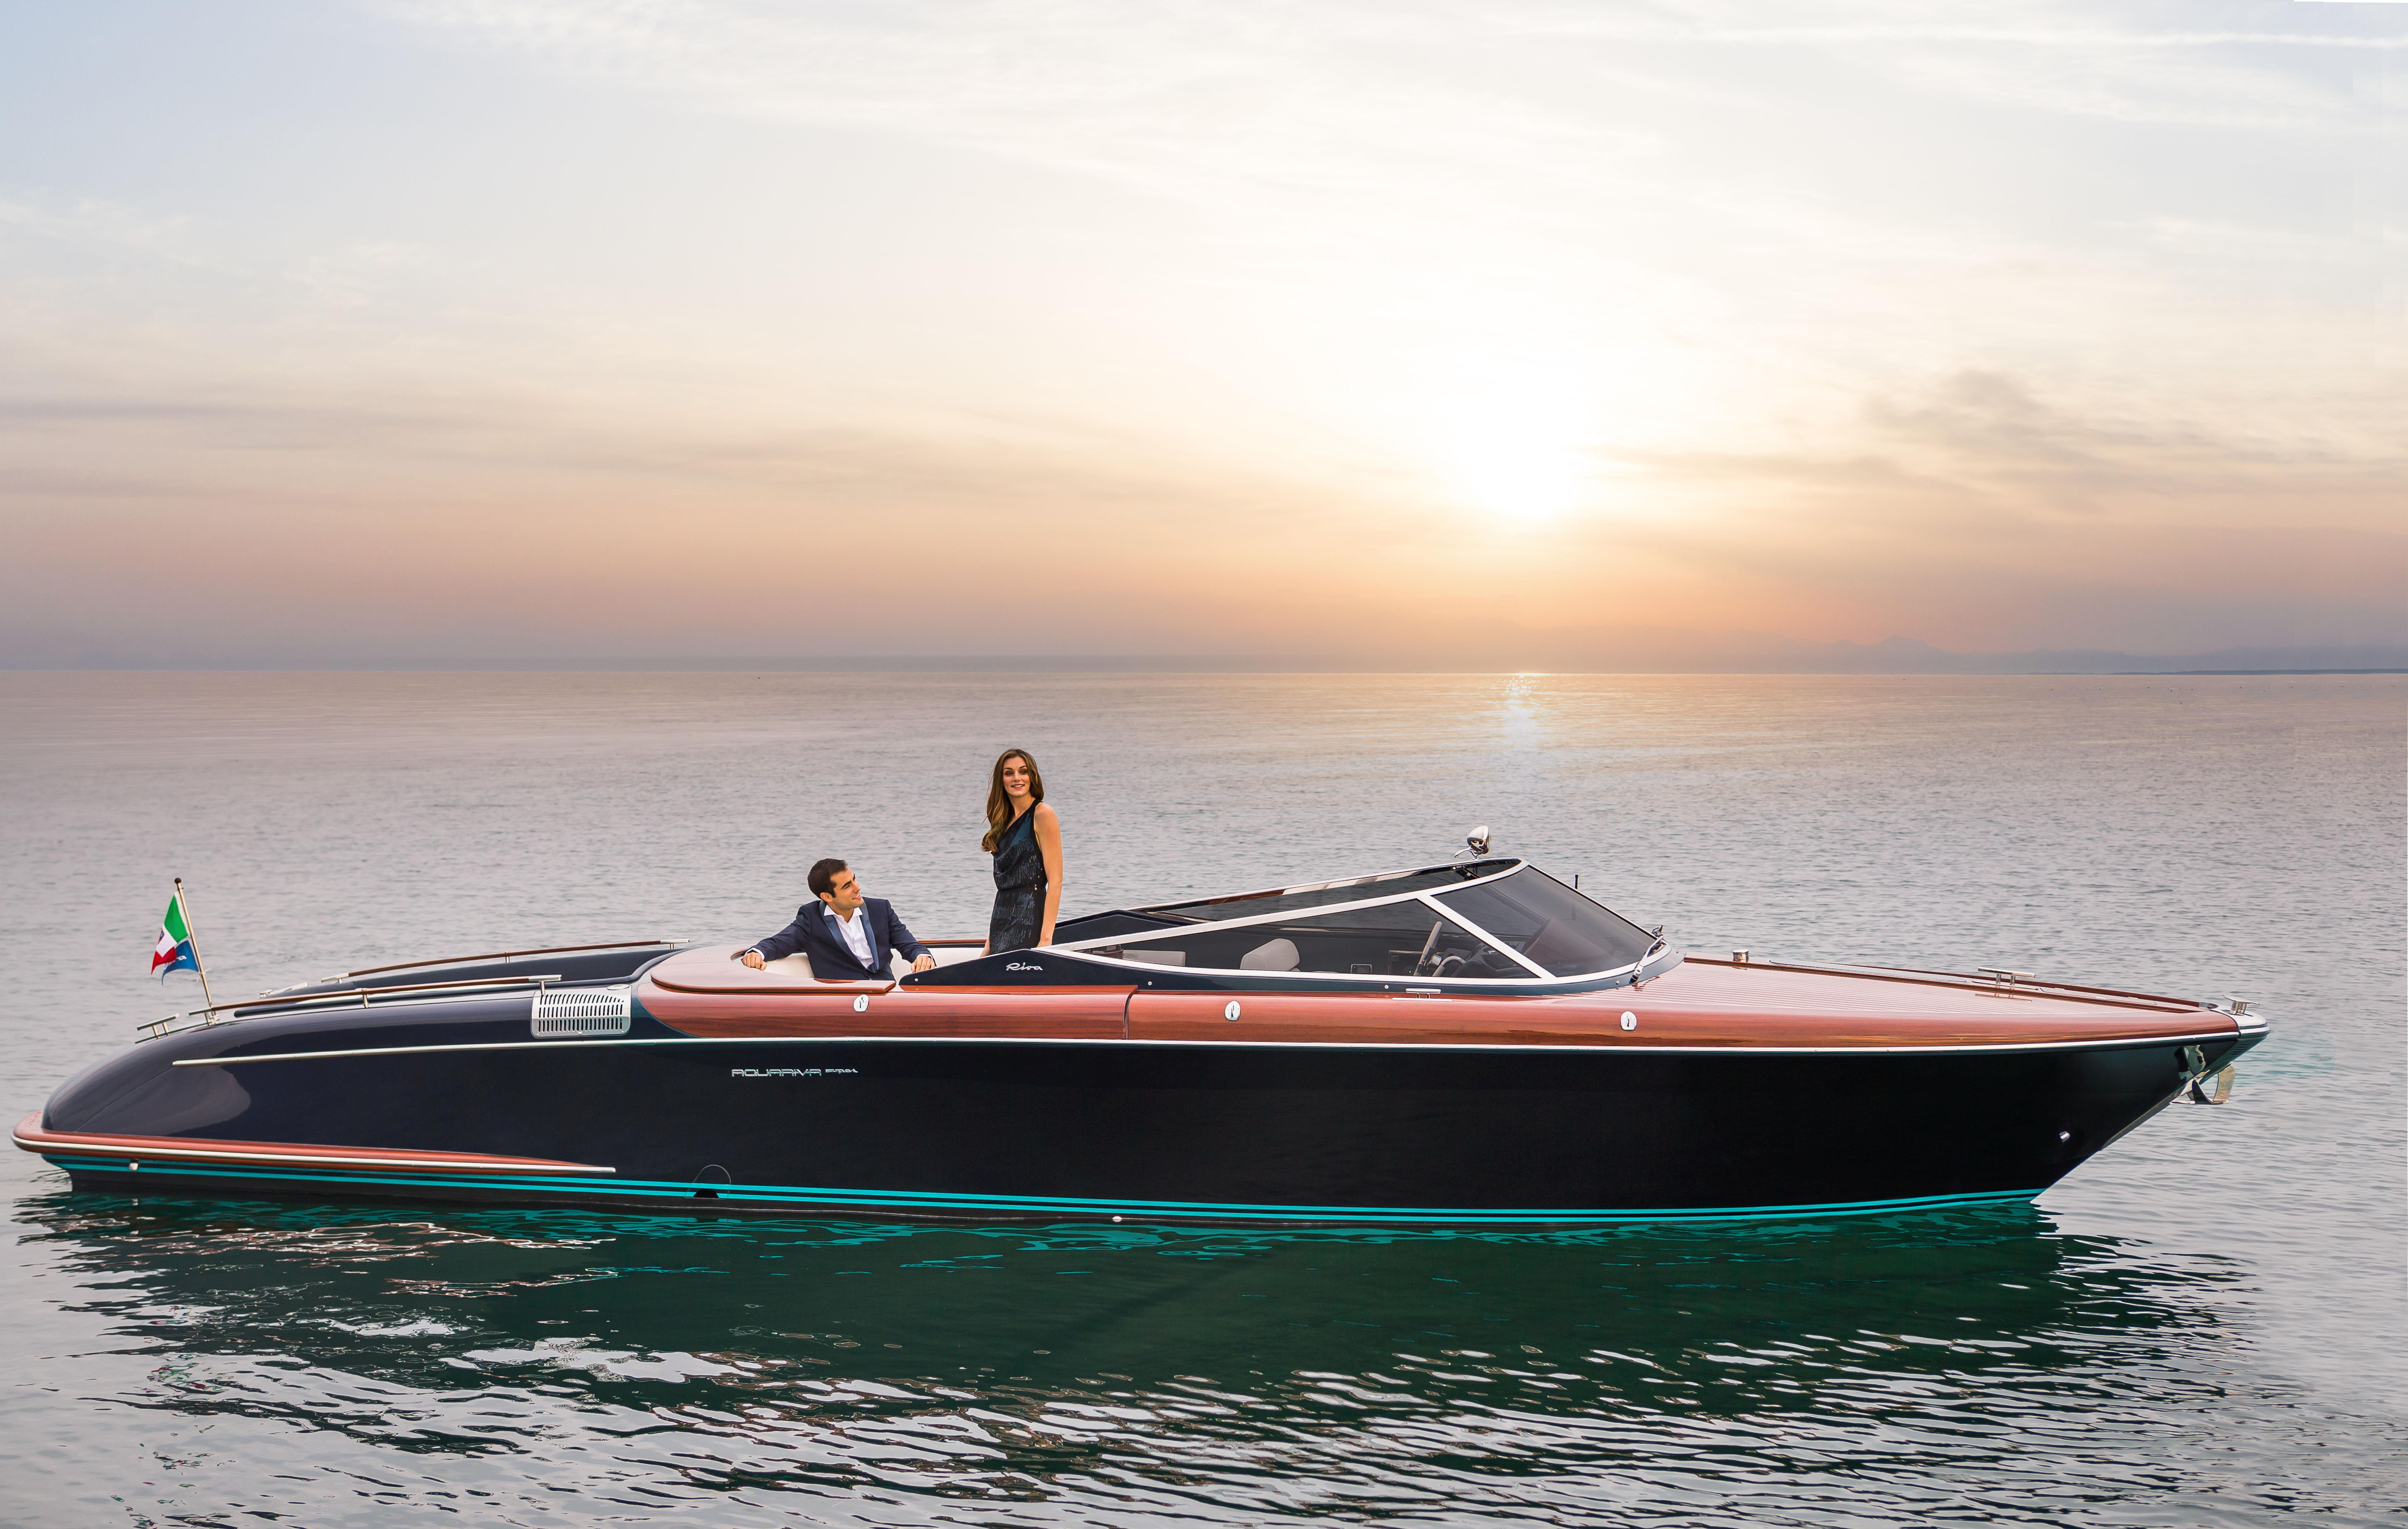 2015 Riva 33 Aquariva - Profile